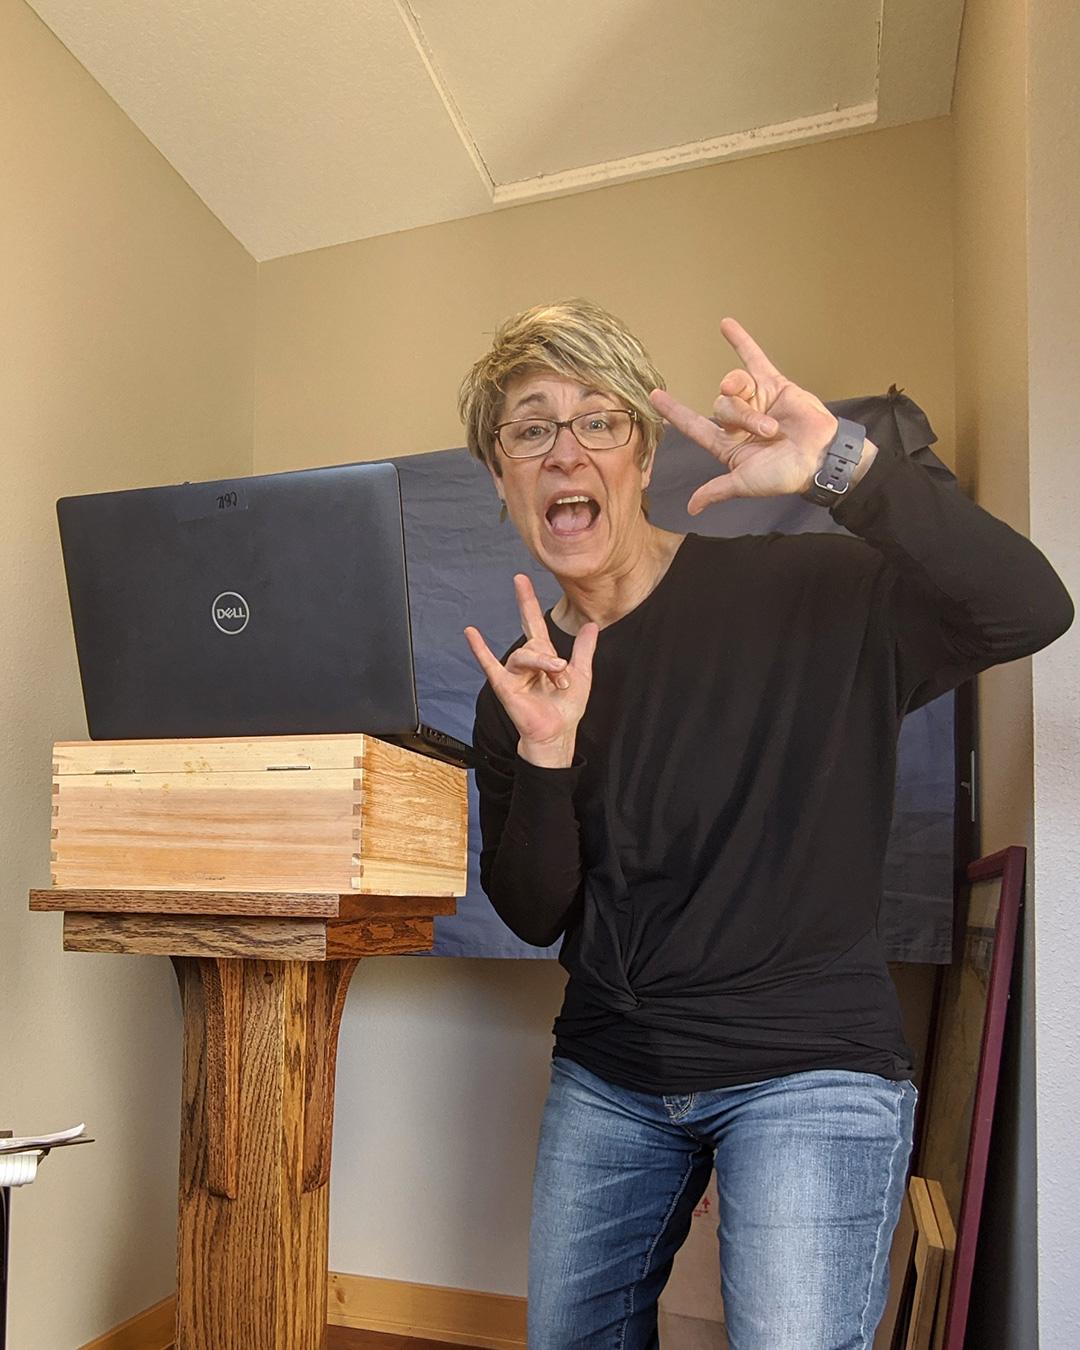 Crista Browne-Krosch at home with a computer